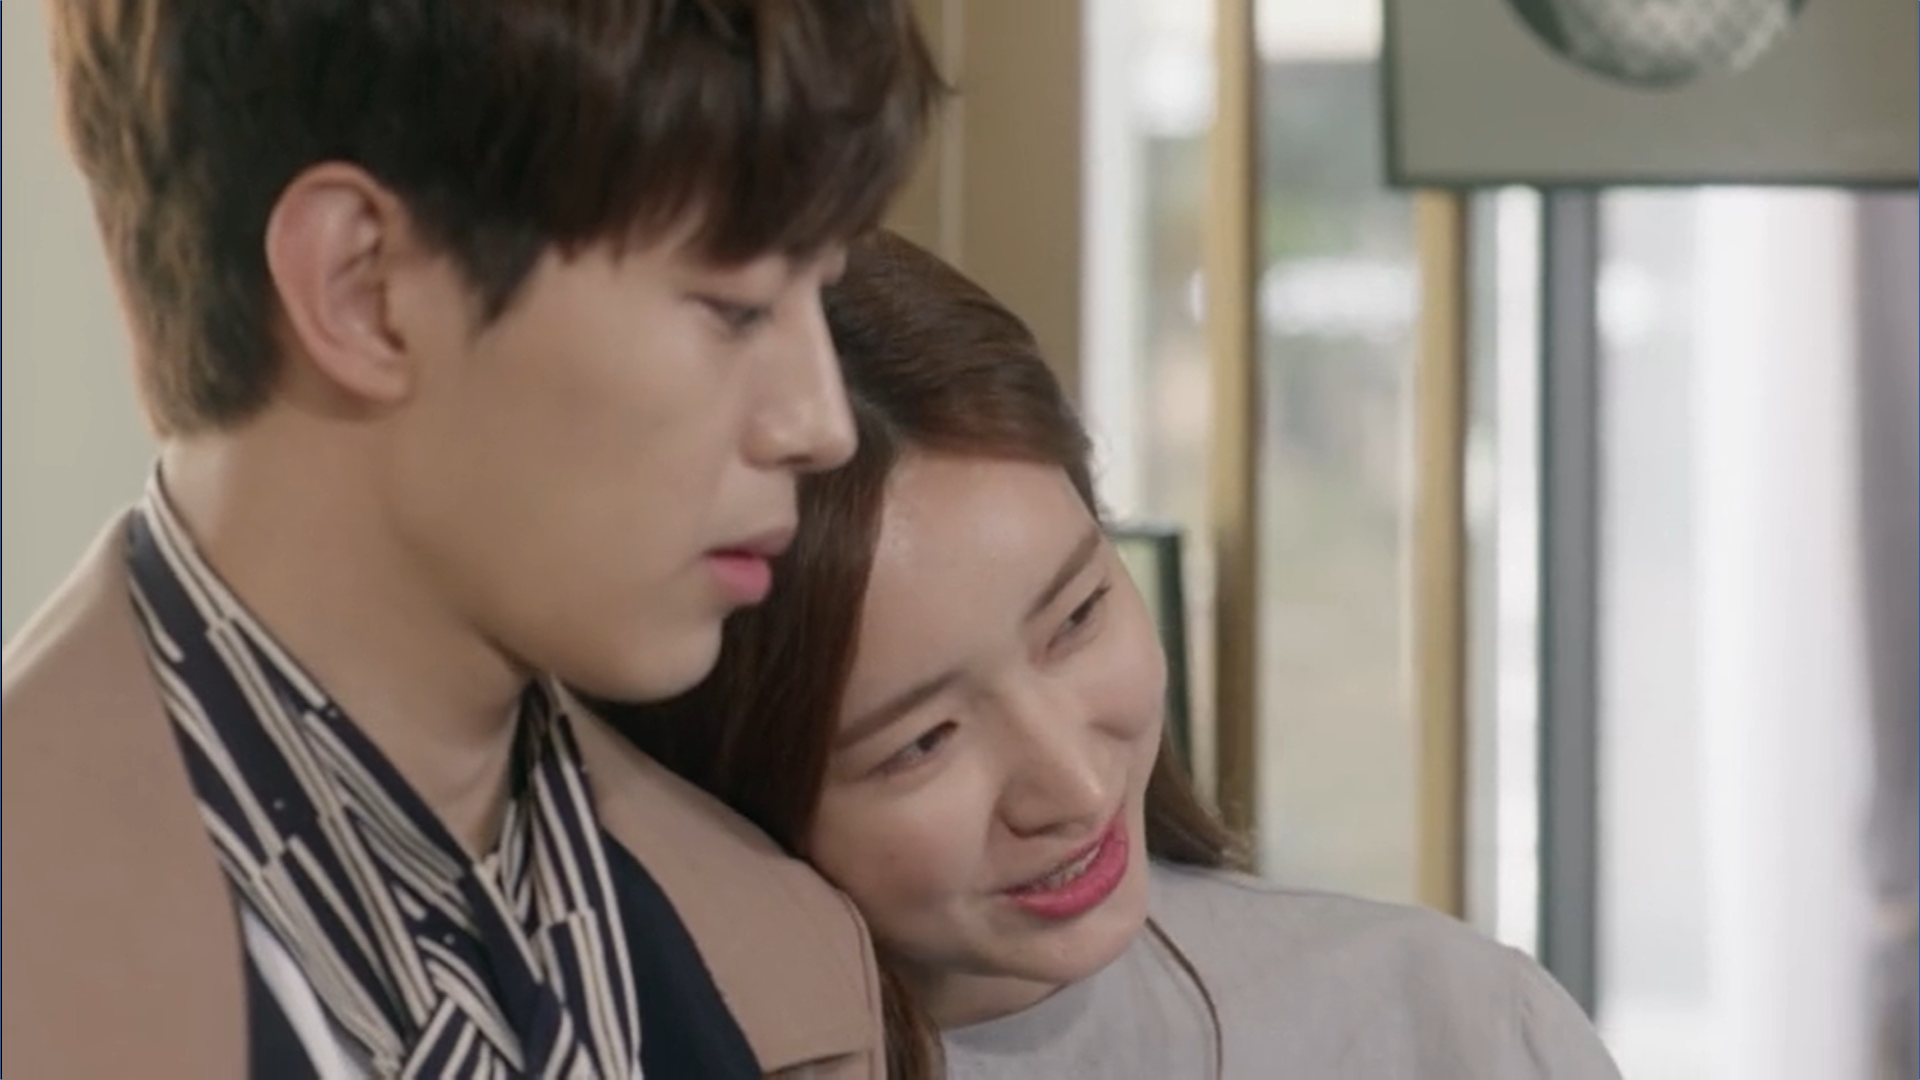 Wednesday 3:30 PM Yoon Jae-won and Gong Na-yeon leaning on him